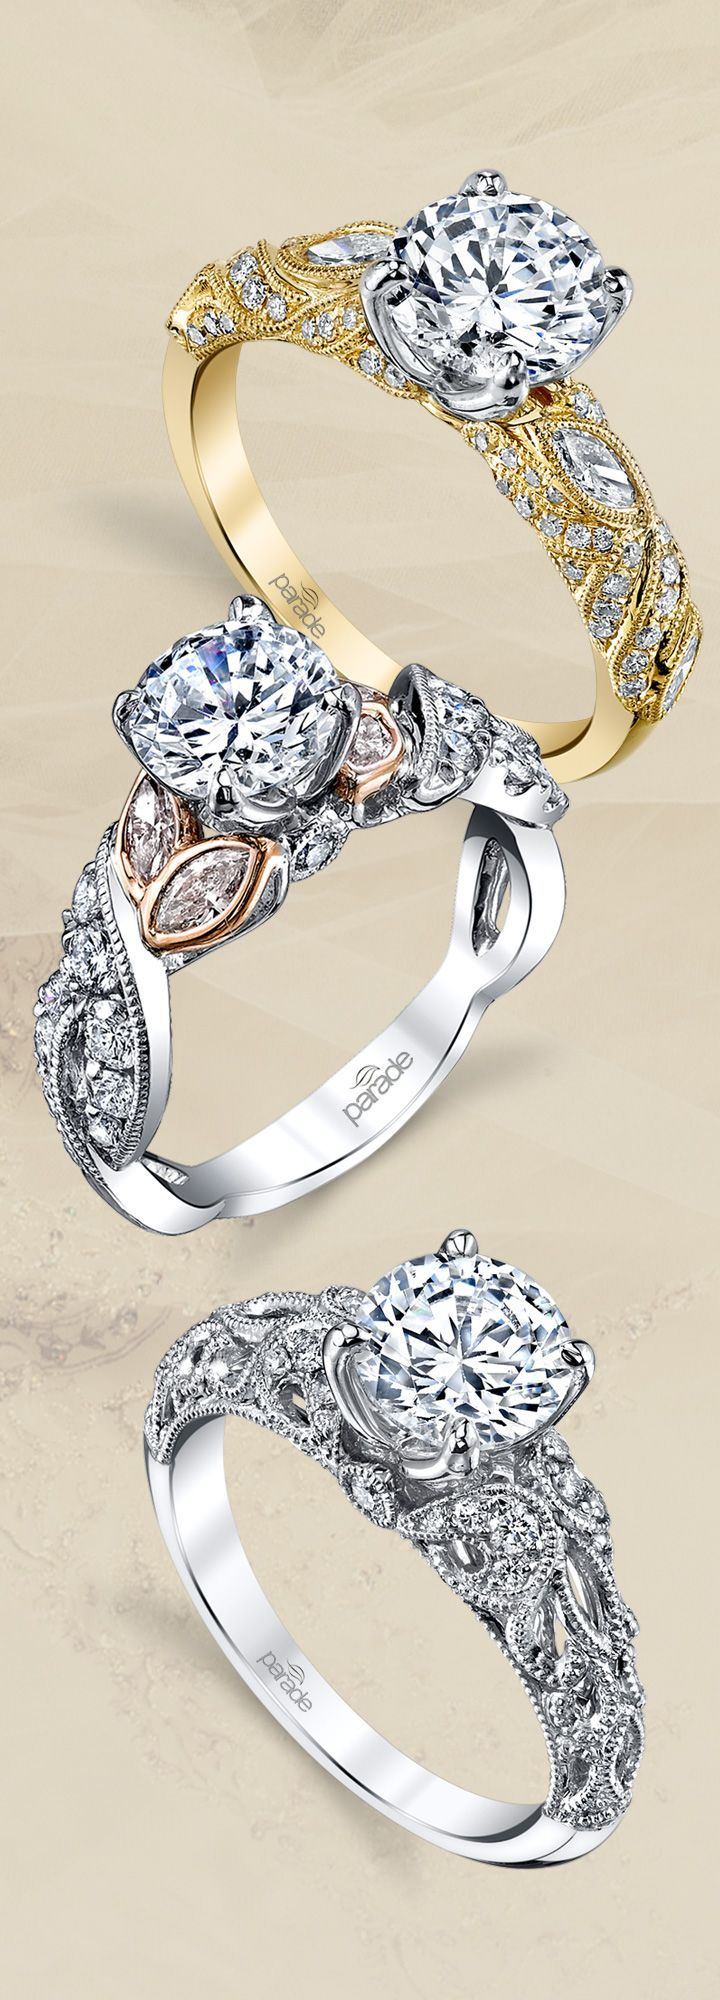 A modern take on vintage engagement rings! New arrivals from Parade ...